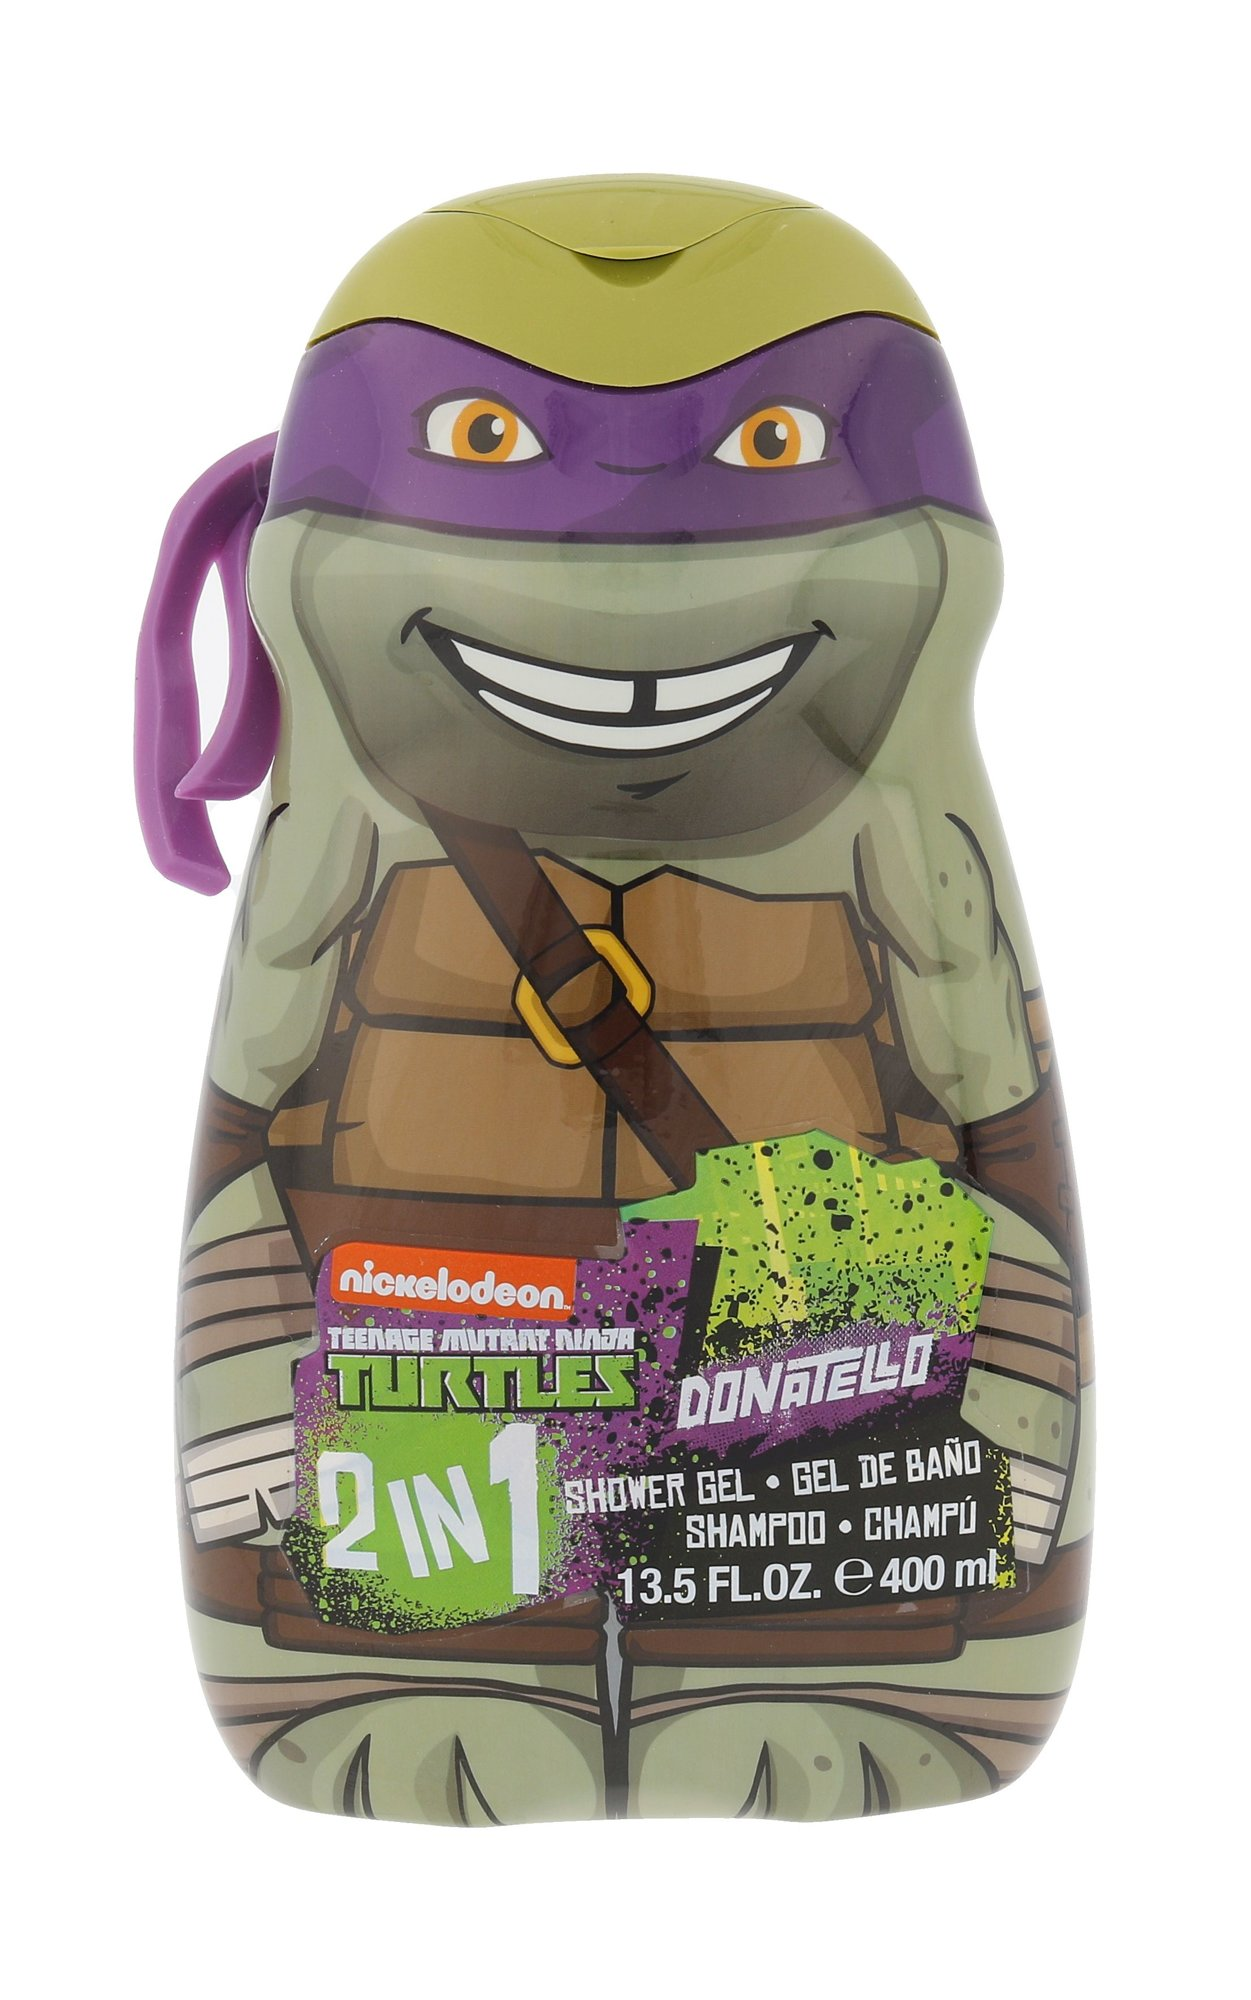 Nickelodeon Teenage Mutant Ninja Turtles Donatello Shower gel 400ml